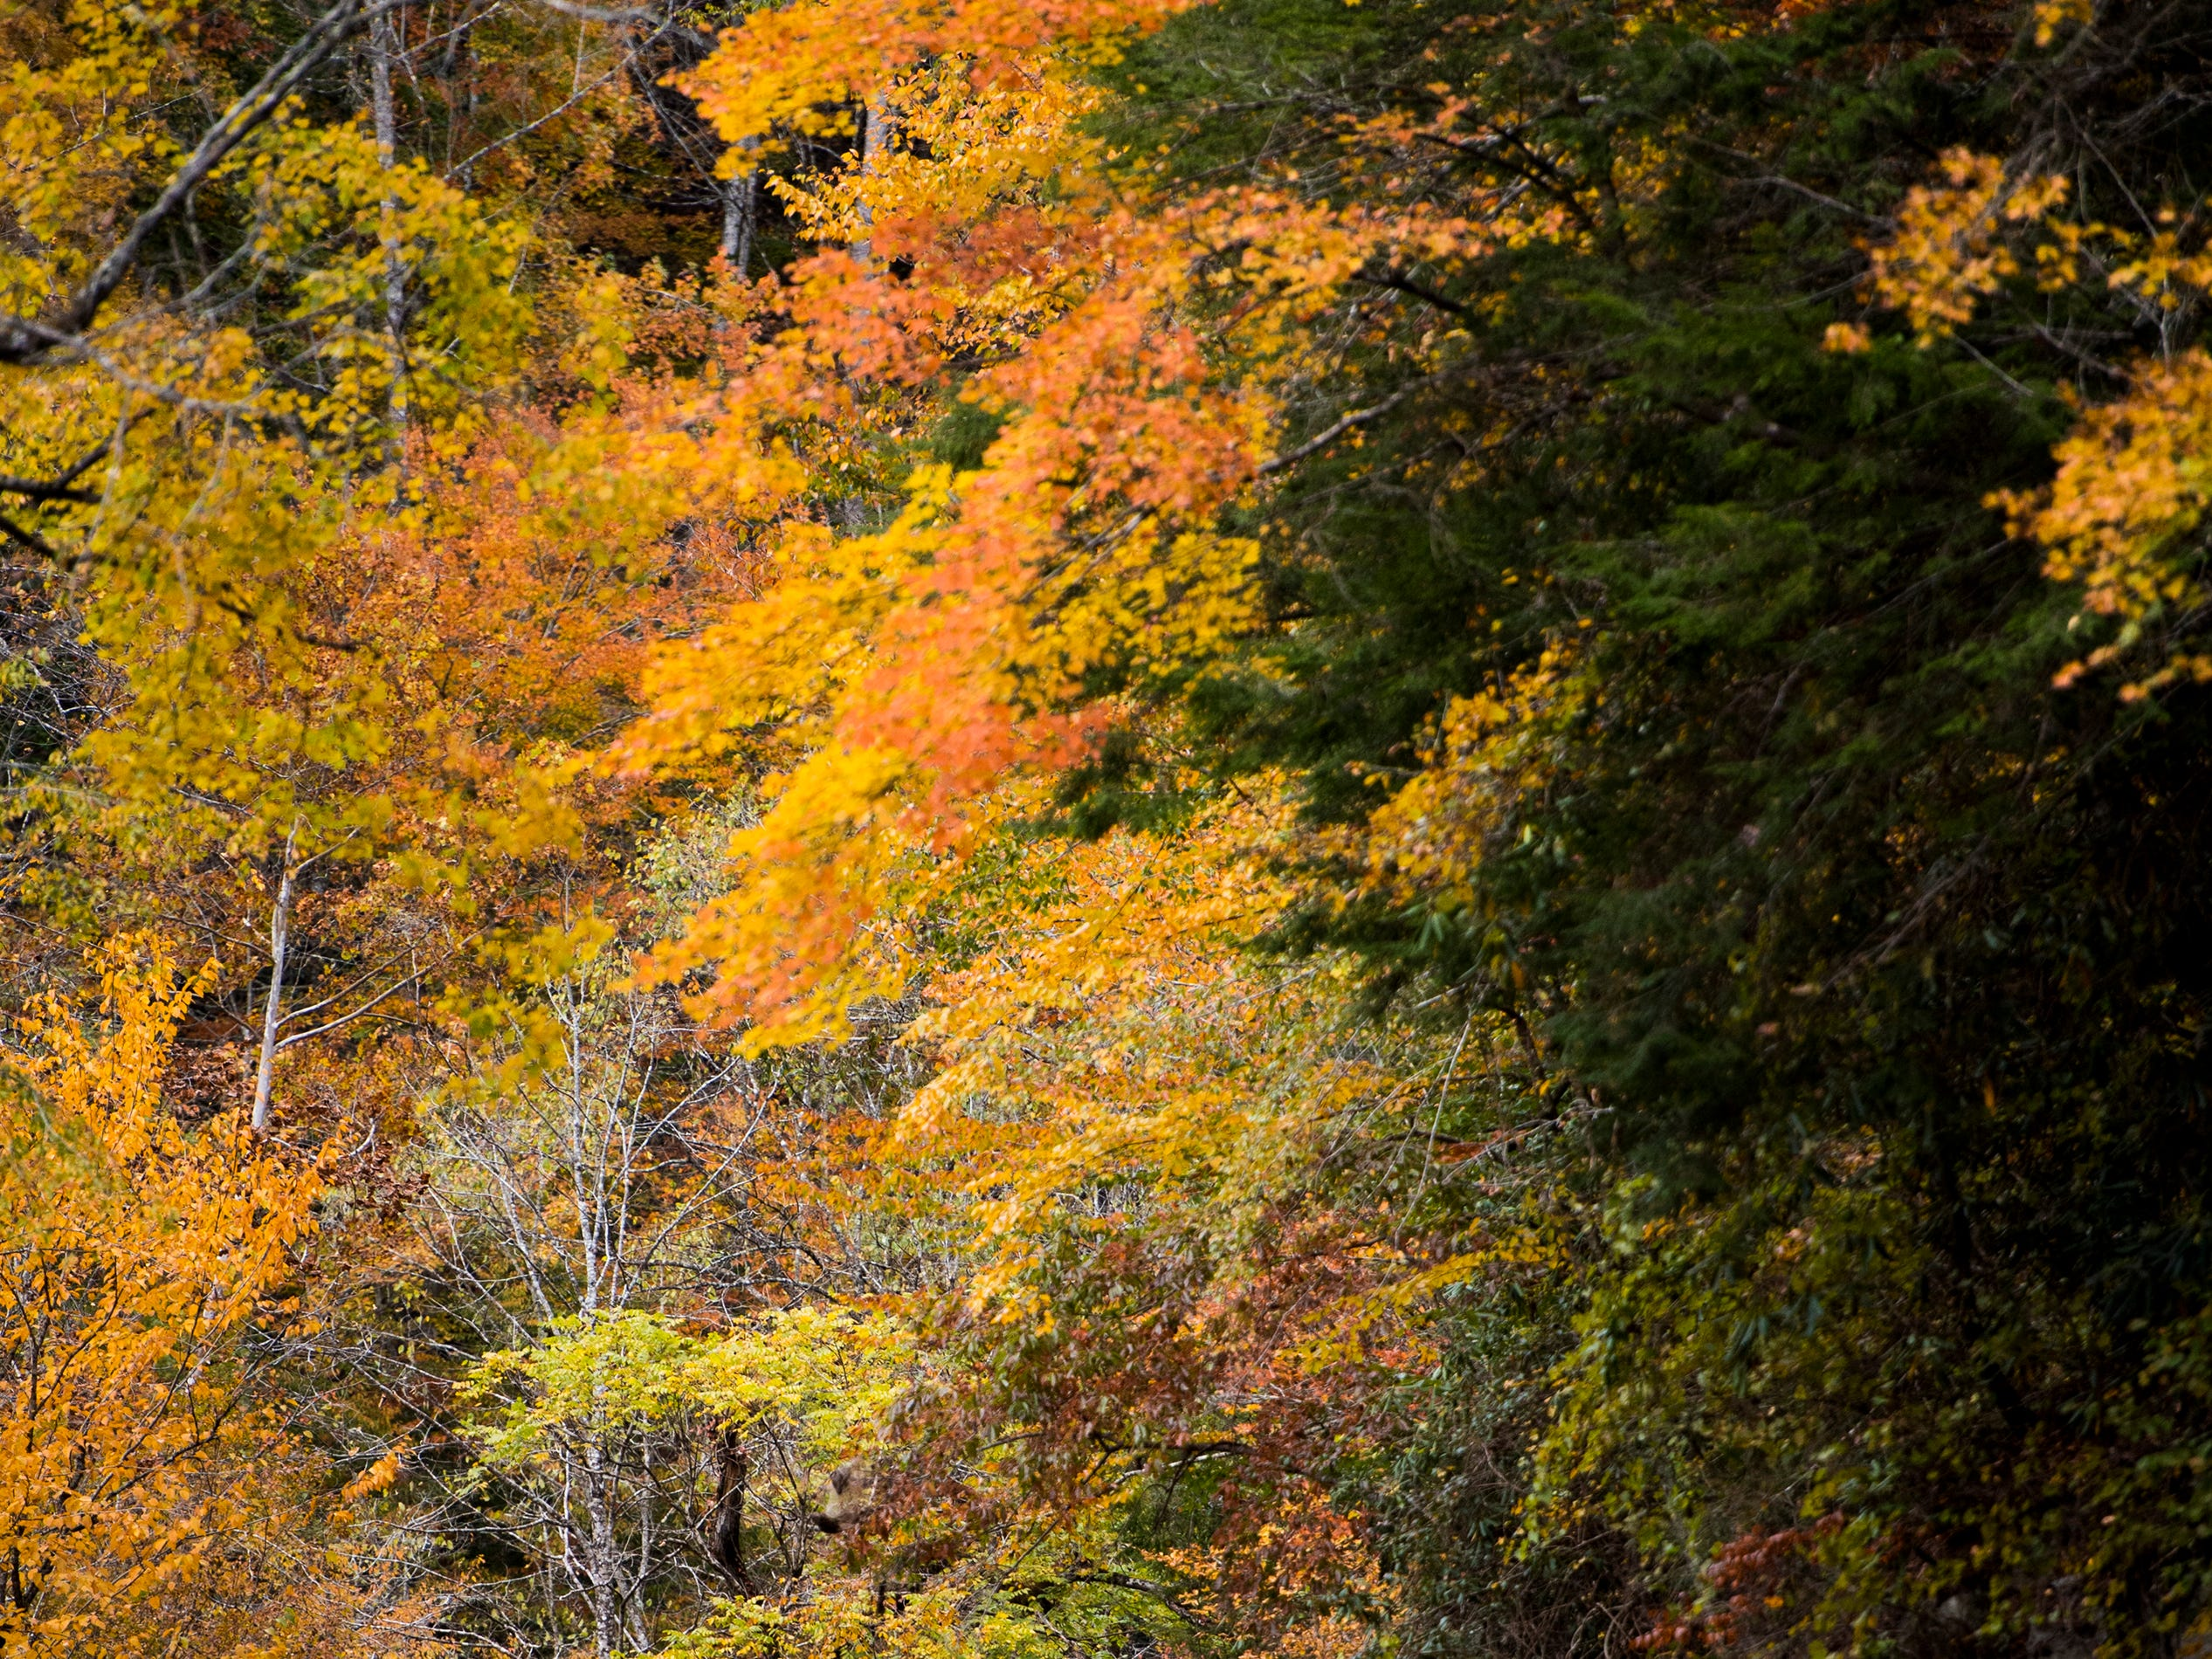 Fall foliage along Little River Gorge Road in the Great Smoky Mountains National Park on Sunday, November 4, 2018.